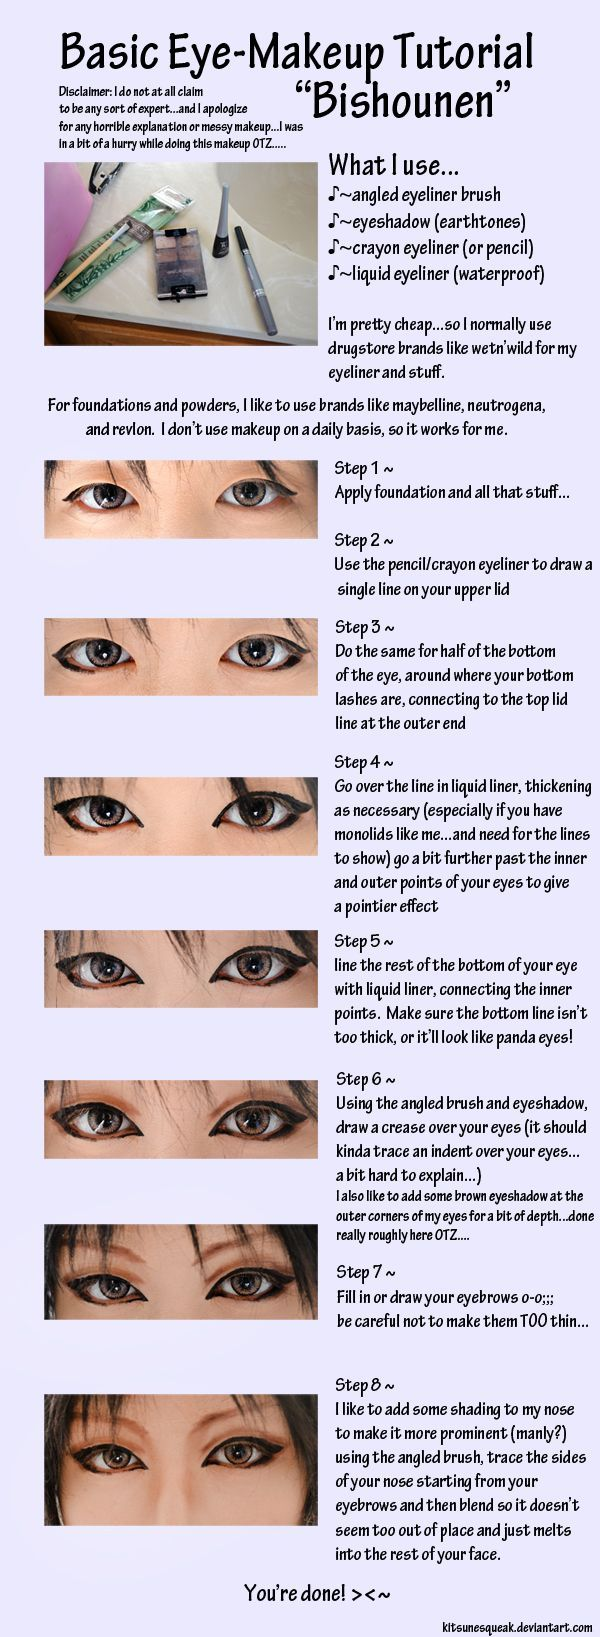 Makeup Ideas 2017/ 2018  - cosplay makeup tutorial | eye_makeup_tutorial___pretty_boy_by_kitsunesqueak-d4my...  https://flashmode.me/beauty/make-up/makeup-ideas-2017-2018-cosplay-makeup-tutorial-eye_makeup_tutorial___pretty_boy_by_kitsunesqueak-d4my-3/  , #MakeUp